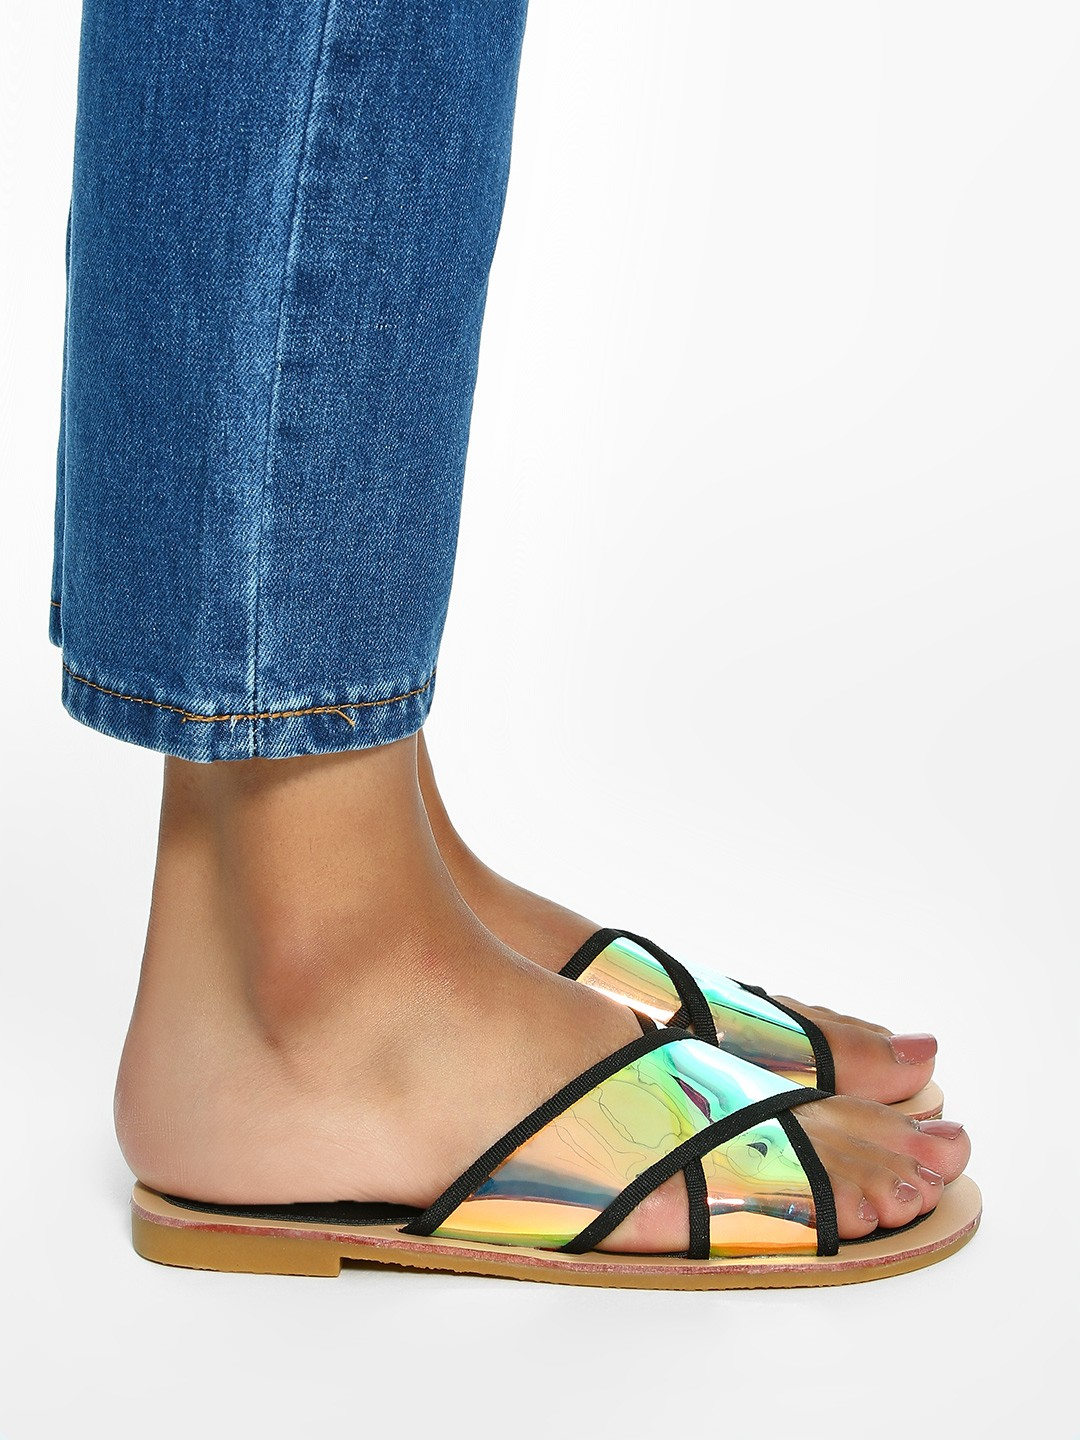 Sole Story Black Holographic Cross Strap Flat Sandals 1